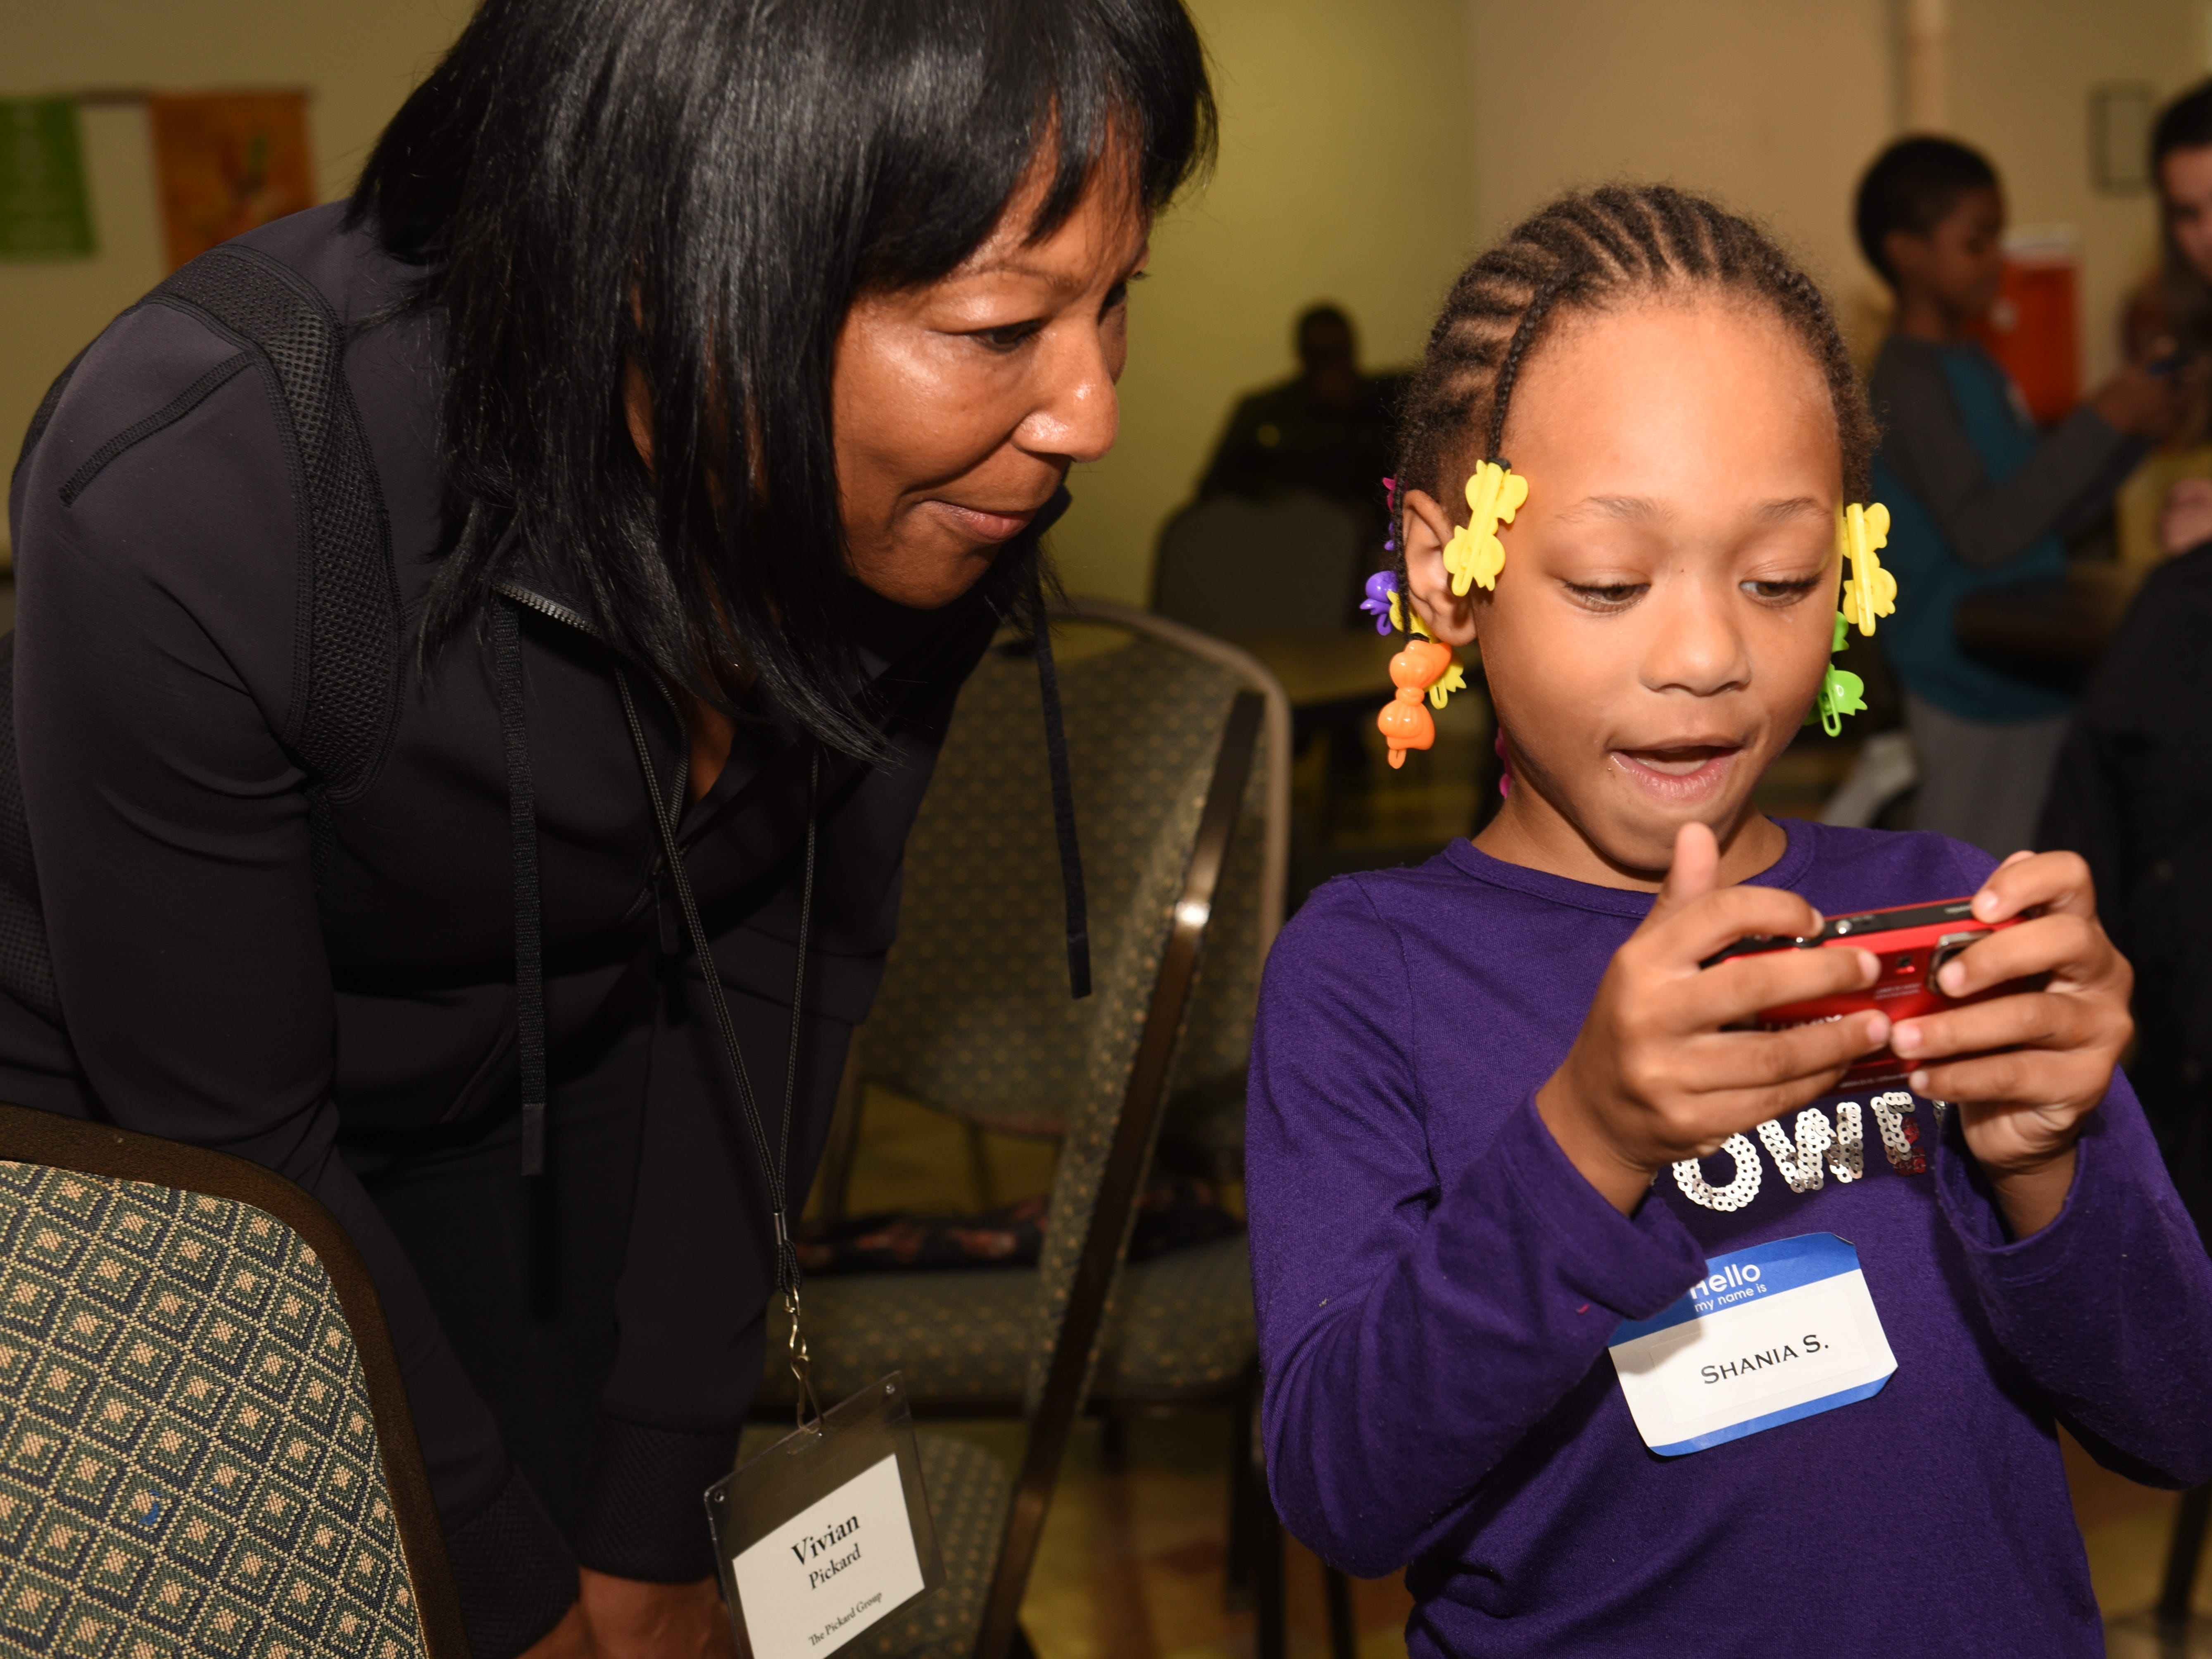 Volunteer mentor Vivian Pickard  (left) assist Shania S. as they view images  in Detroit on October 20, 2018.